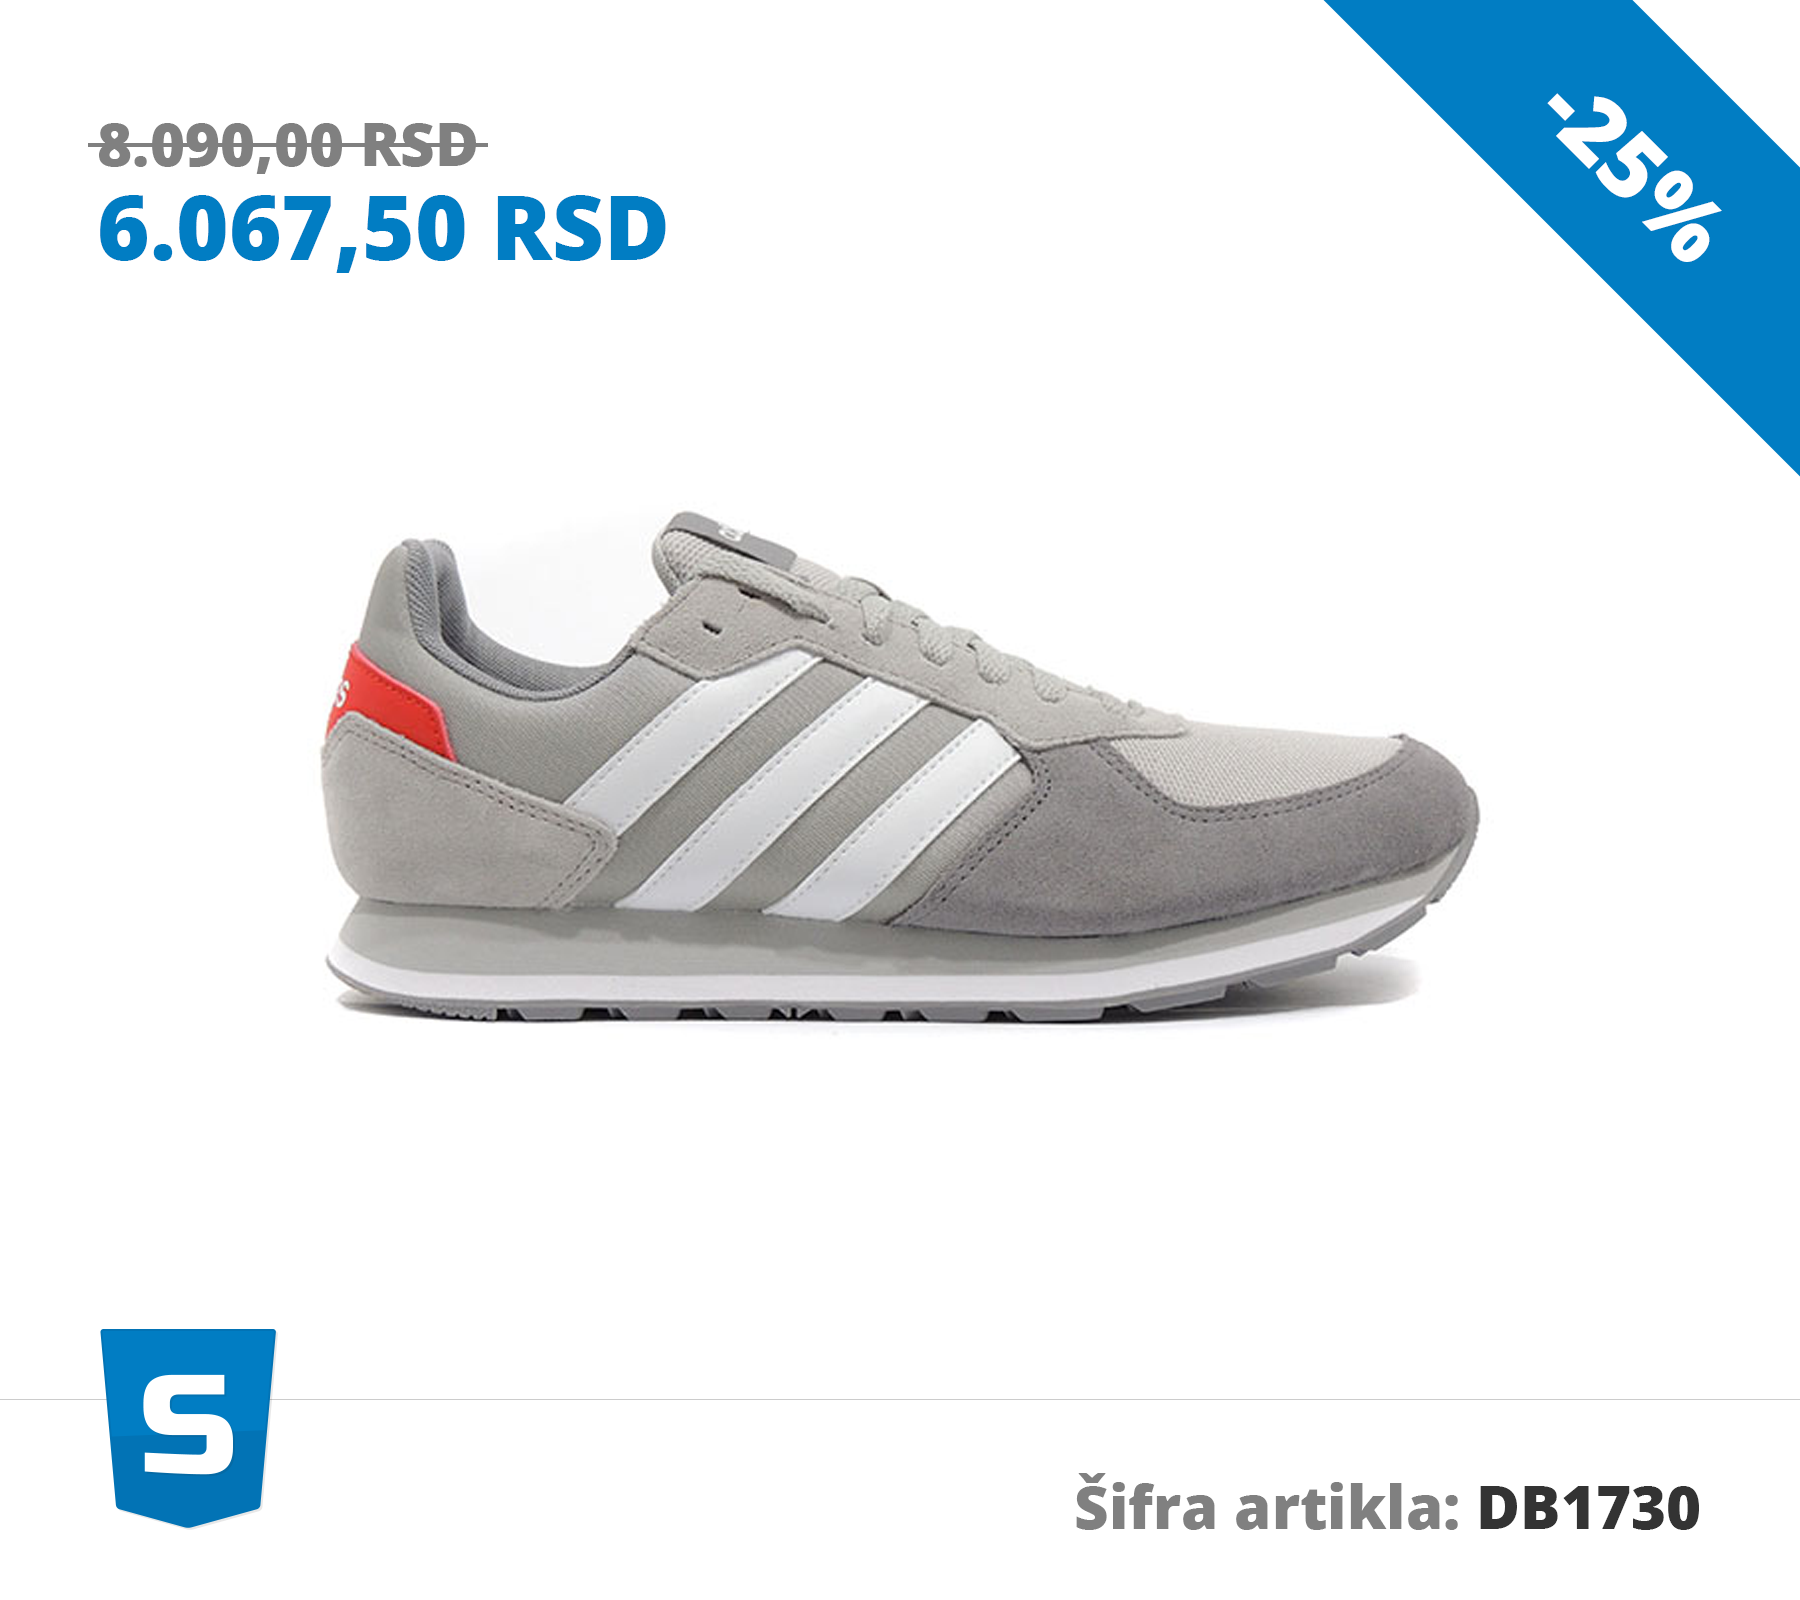 Adidas 8K adidas sneakers shoes patike